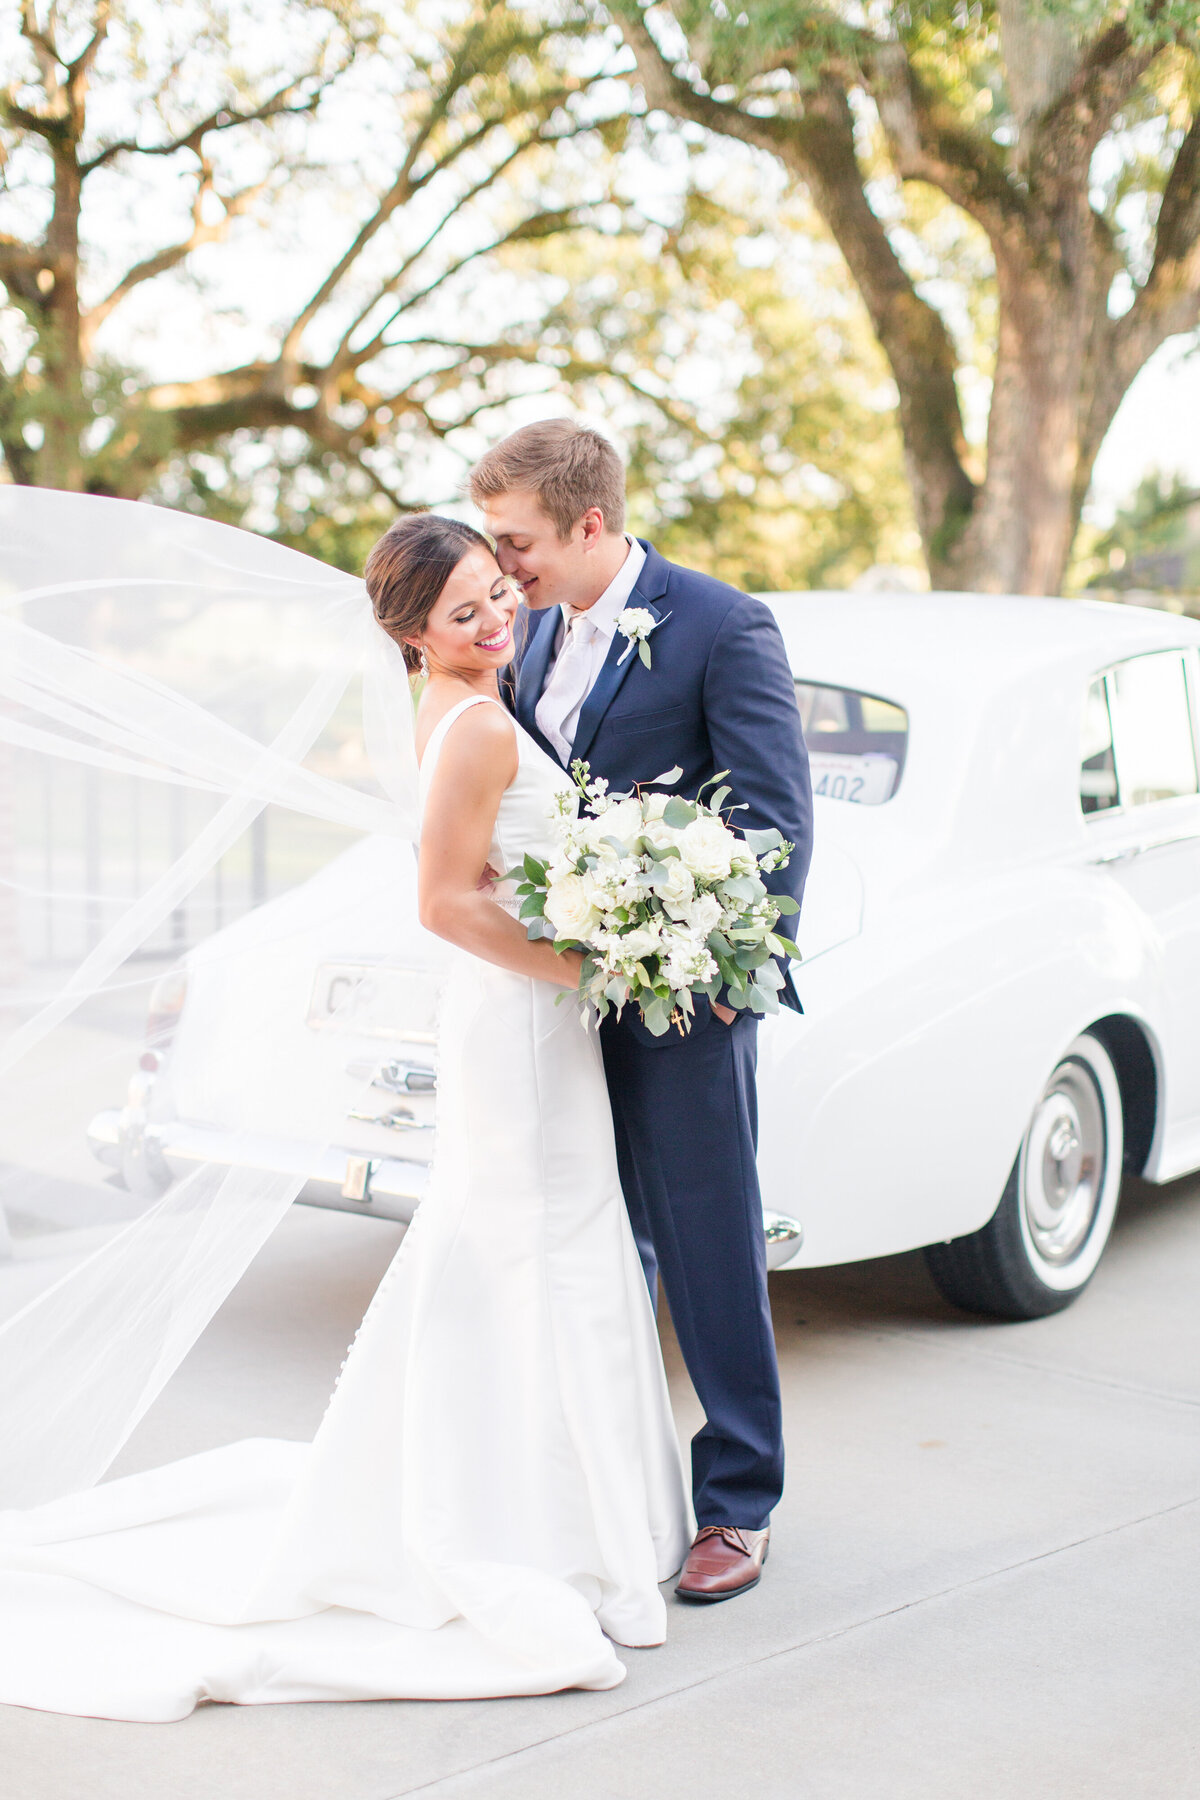 Renee Lorio Photography South Louisiana Wedding Engagement Light Airy Portrait Photographer Photos Southern Clean Colorful1